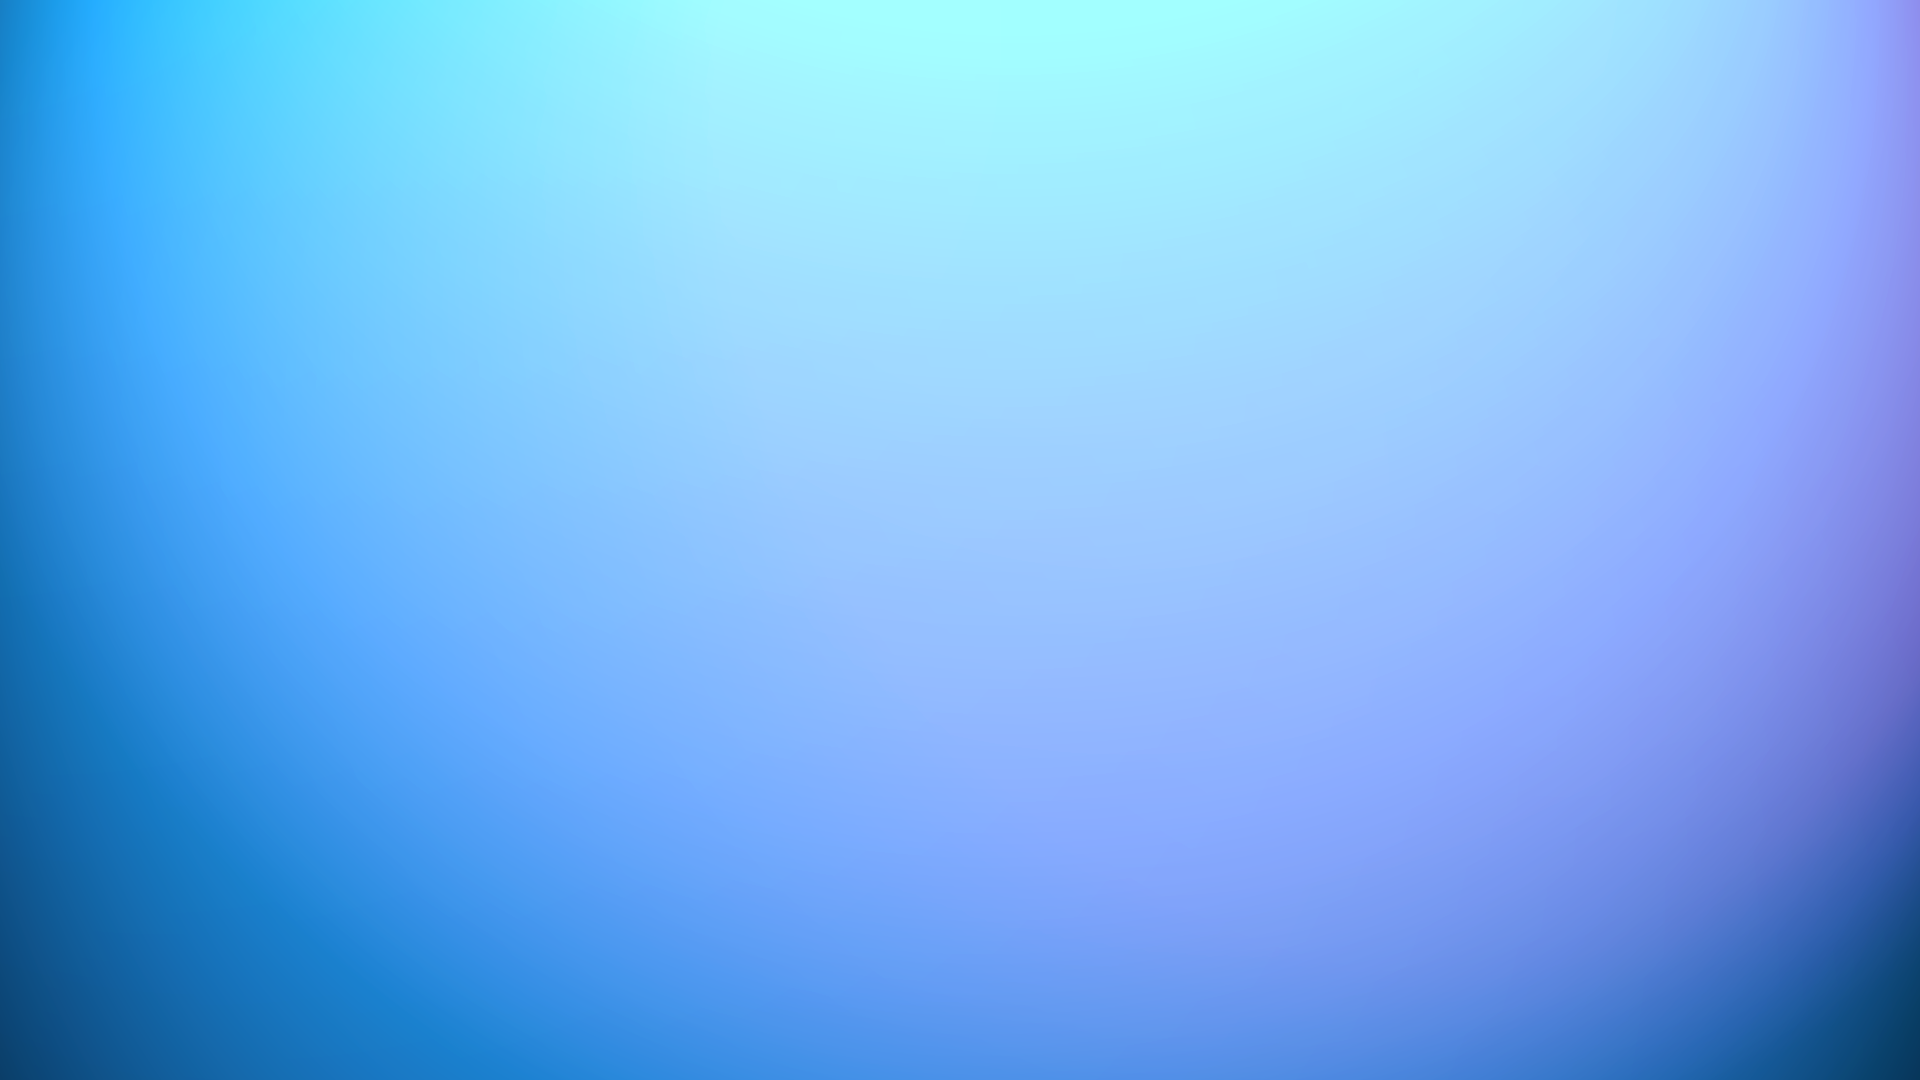 Blue Gradient Wallpaper Stunning Wallpapers Iphone 5s Wallpaper Blurred Background